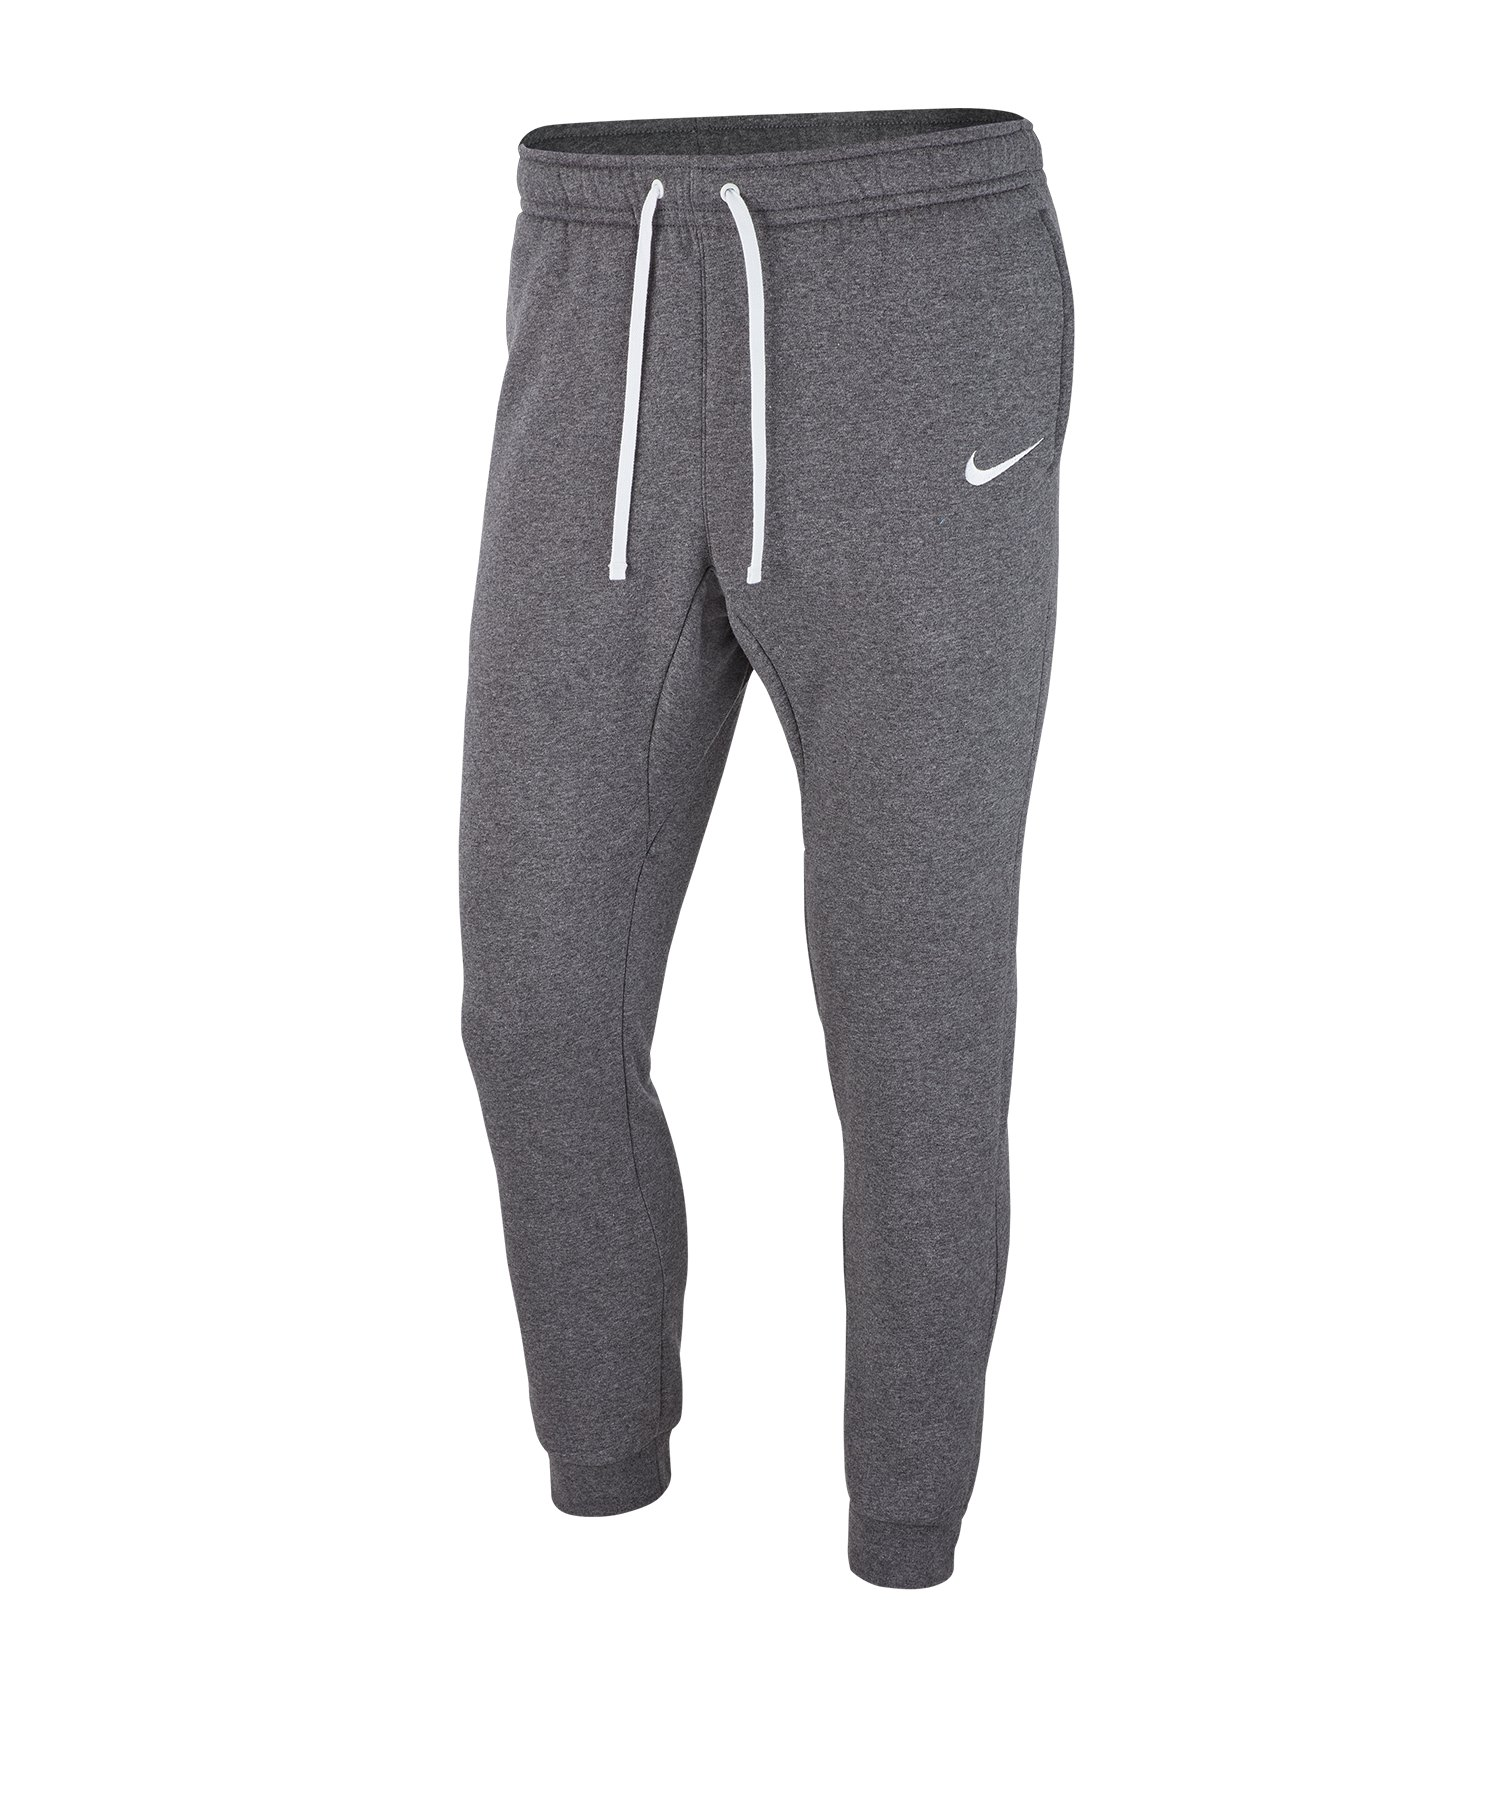 Nike Team Club 19 Fleece Jogginghose Grau F071 - grau